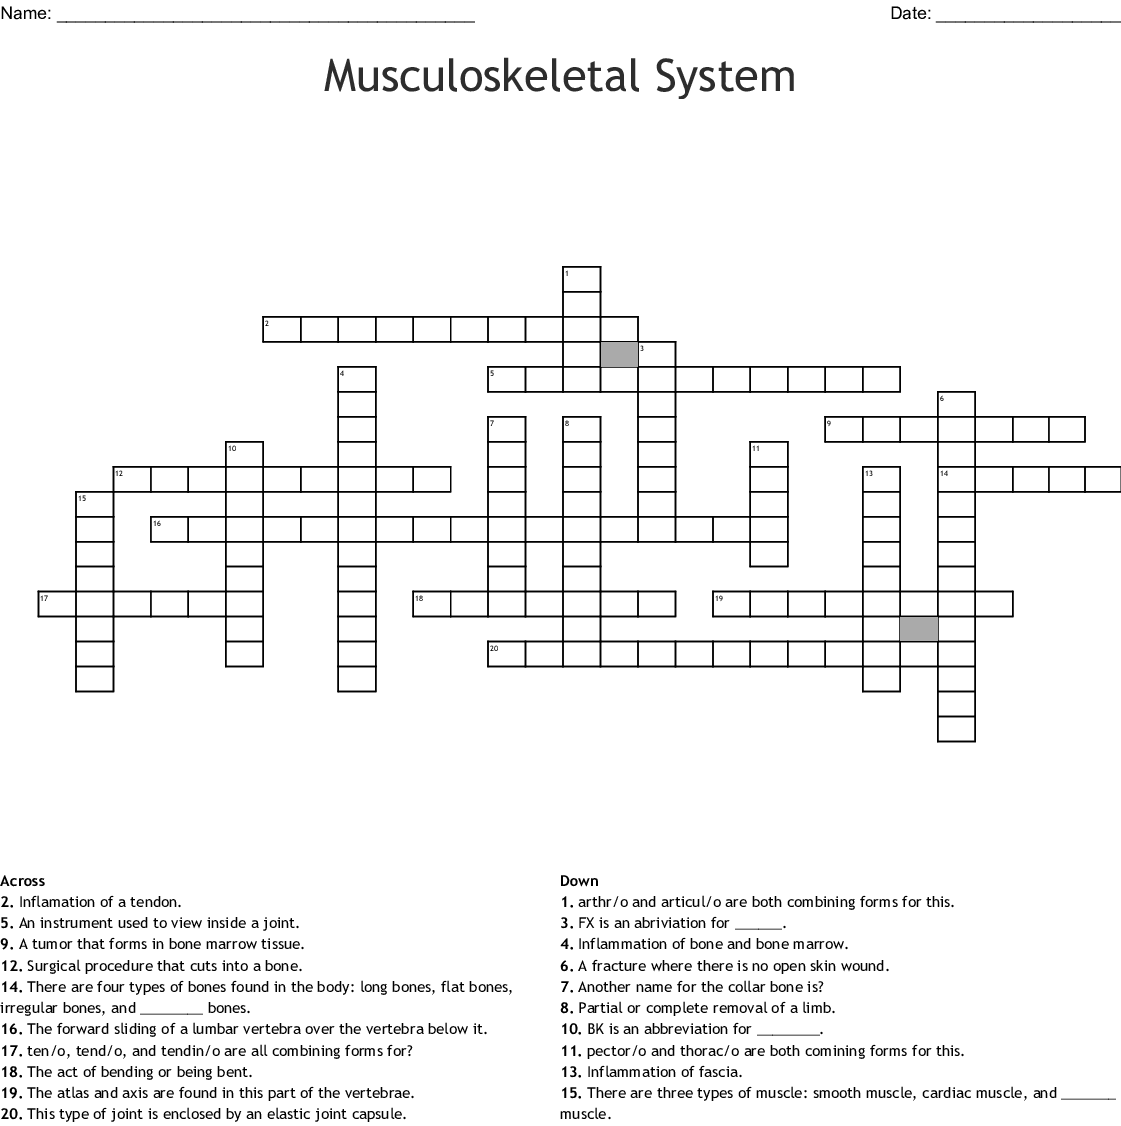 Musculoskeletal System Chapter 4 Crossword